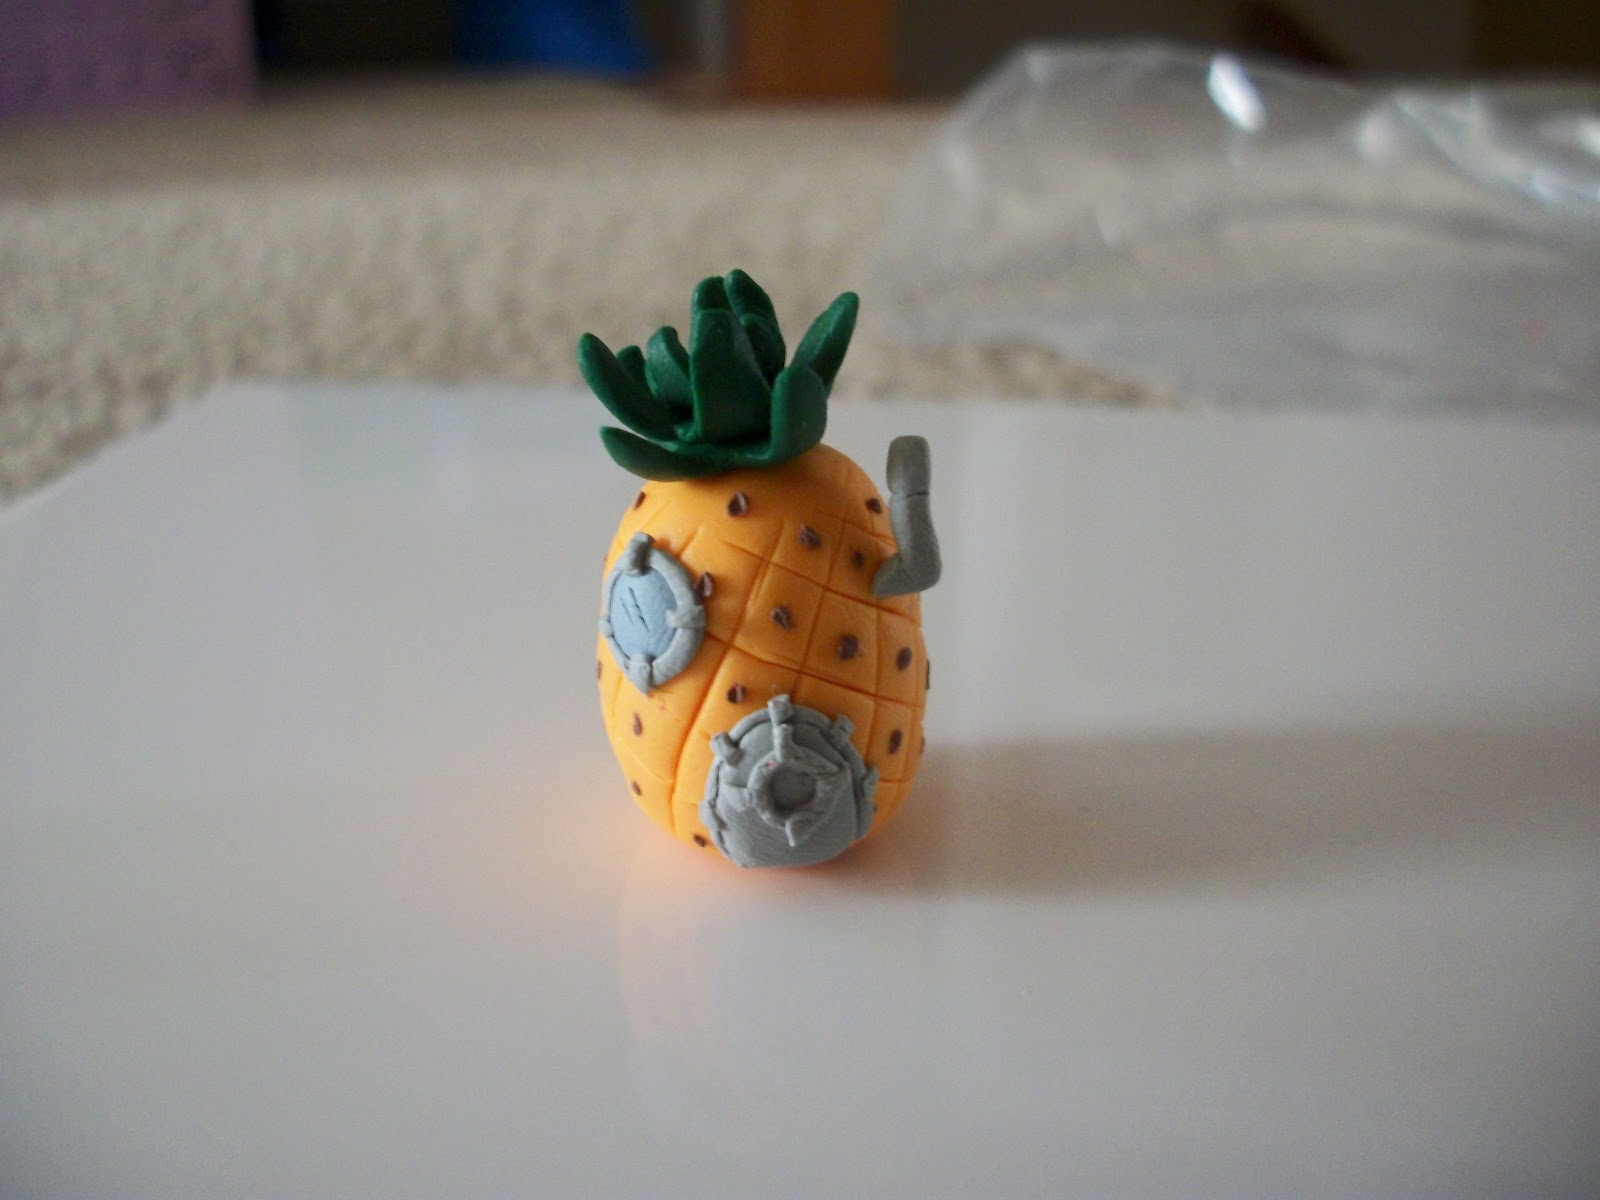 Cool Things To Make With Stuff Around The House - Round Designs